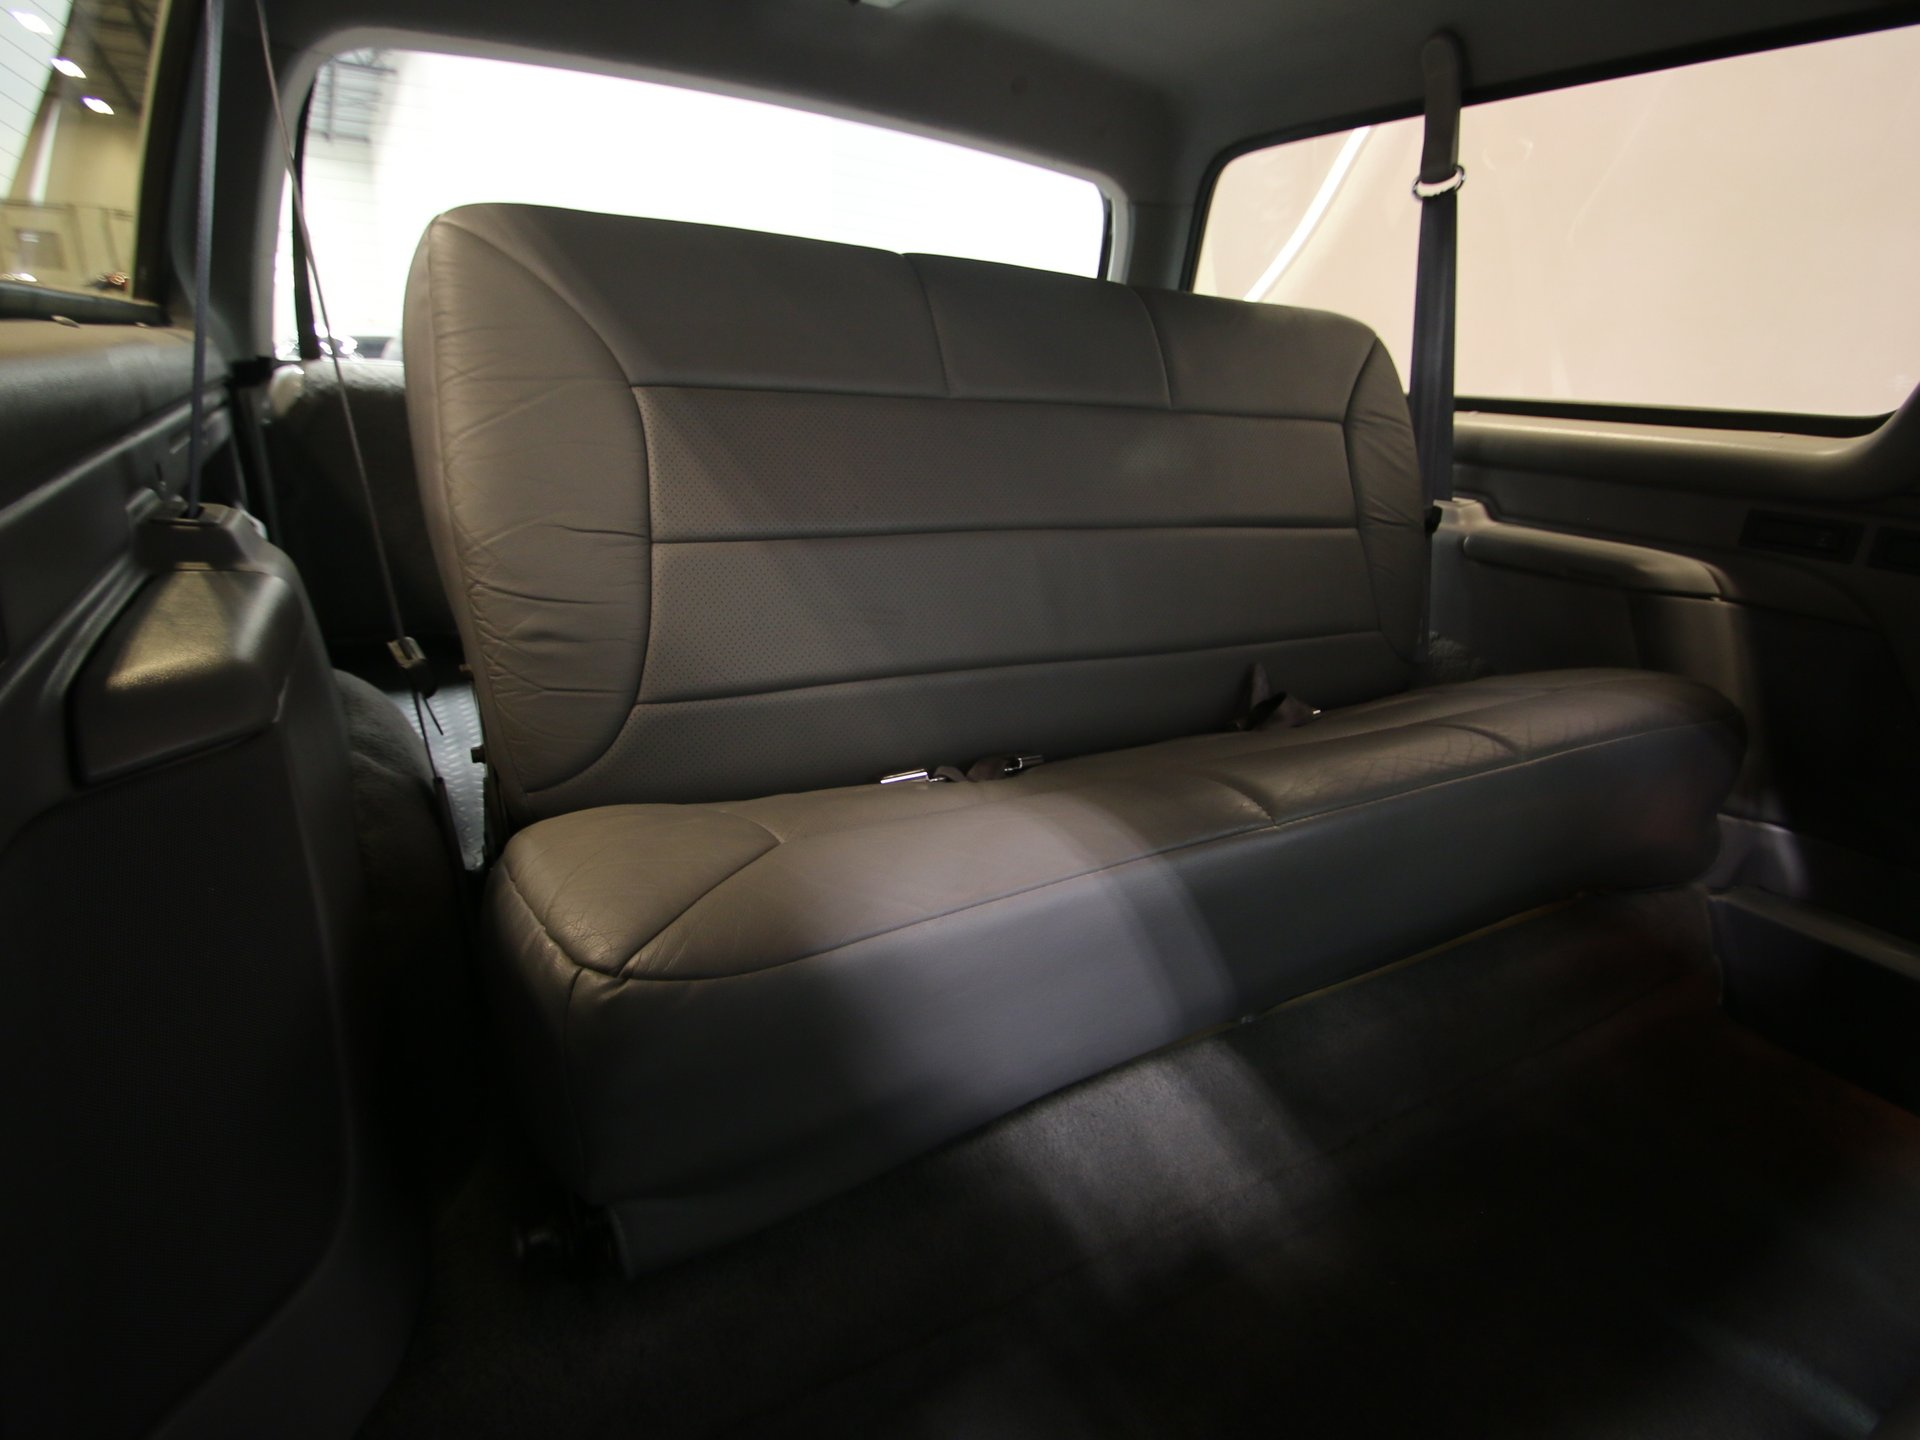 1996 Ford Bronco Streetside Classics The Nations Trusted 1970 Interior You May Also Be Interested In